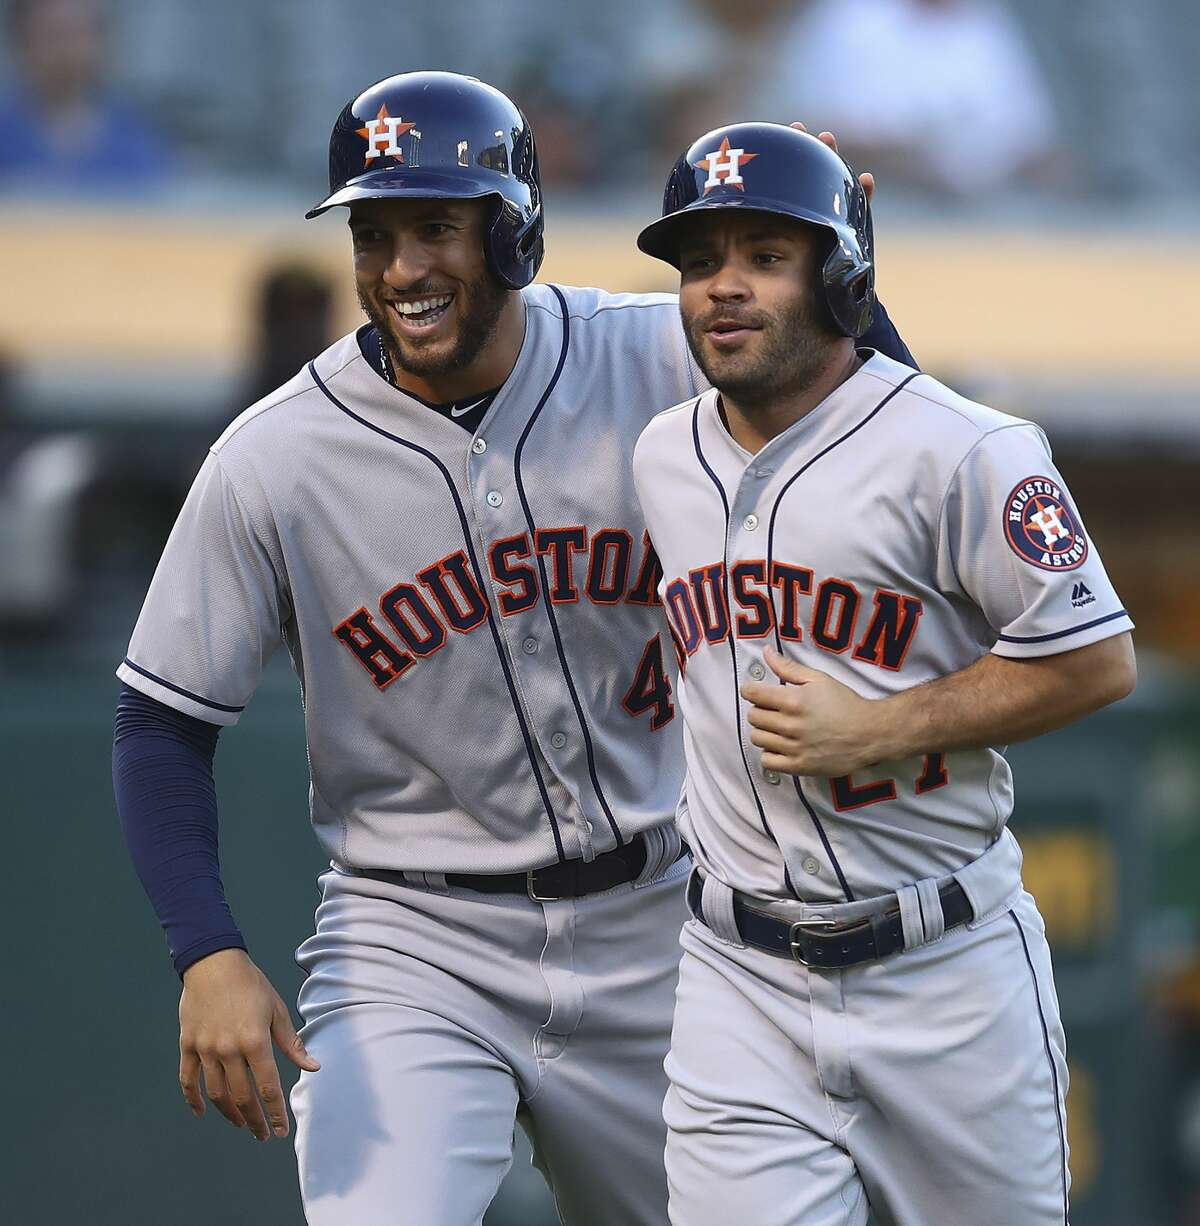 Houston Astros' George Springer, left, and Jose Altuve celebrate after scoring against the Oakland Athletics during the first inning of a baseball game Wednesday, June 13, 2018, in Oakland, Calif. (AP Photo/Ben Margot)